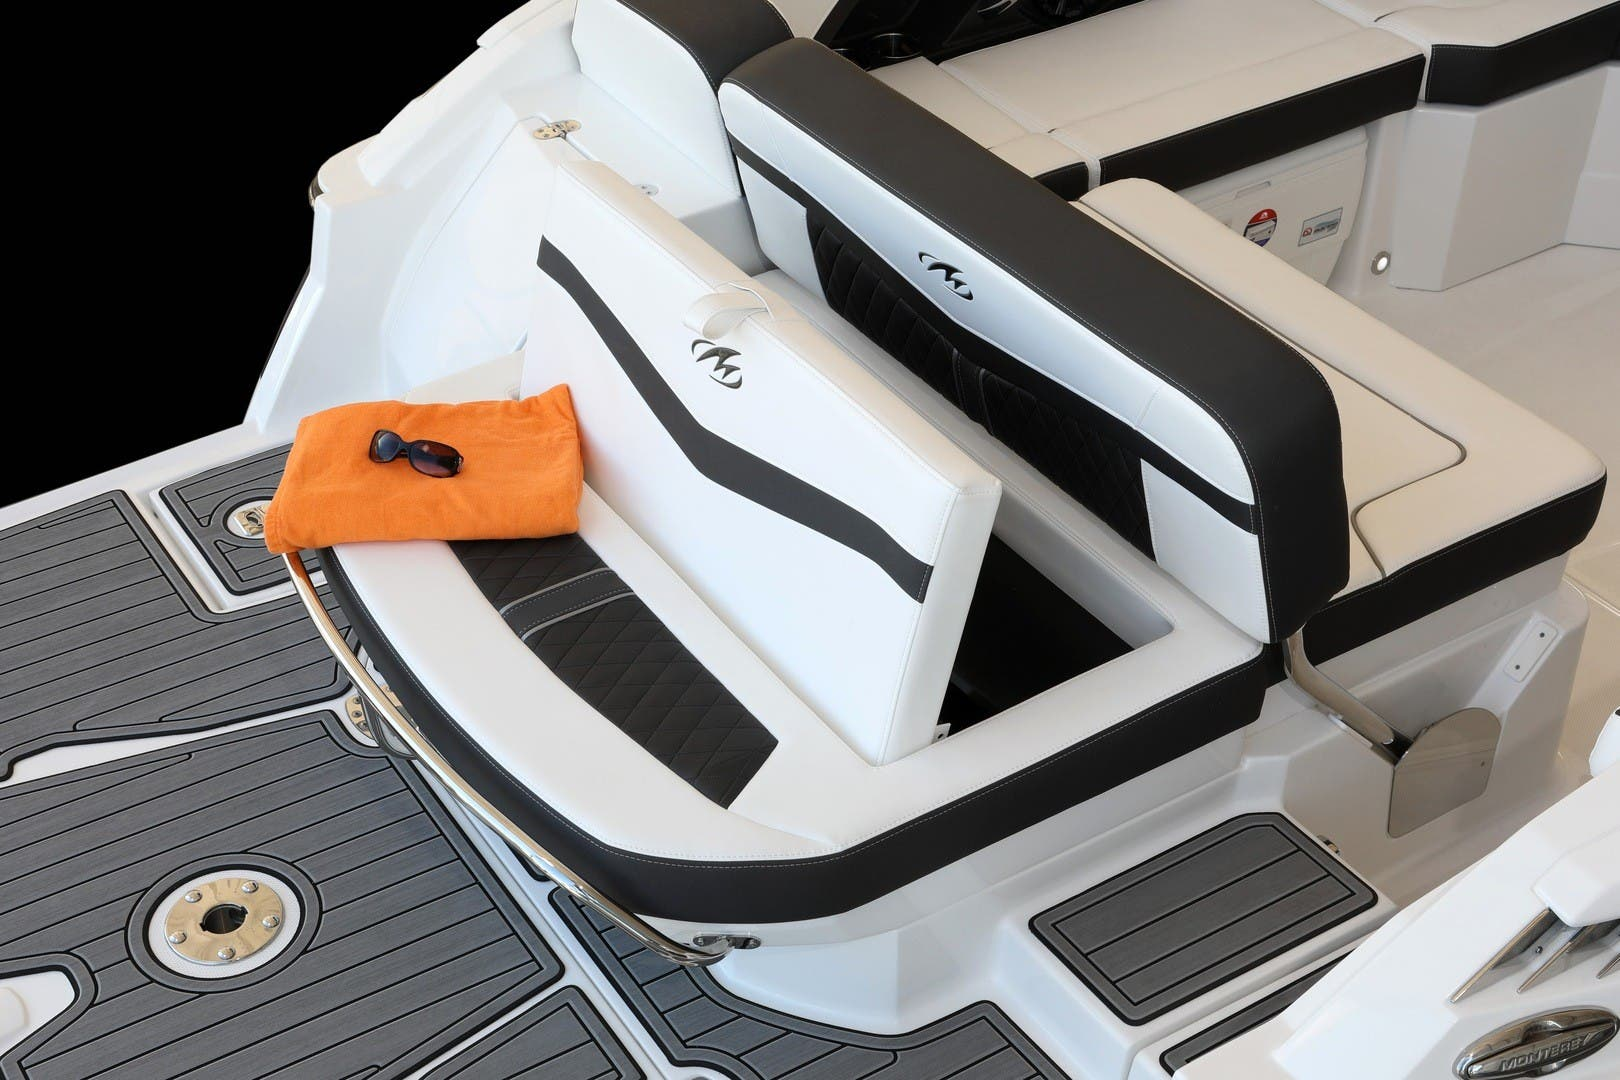 2022 Monterey boat for sale, model of the boat is 258ss & Image # 6 of 6